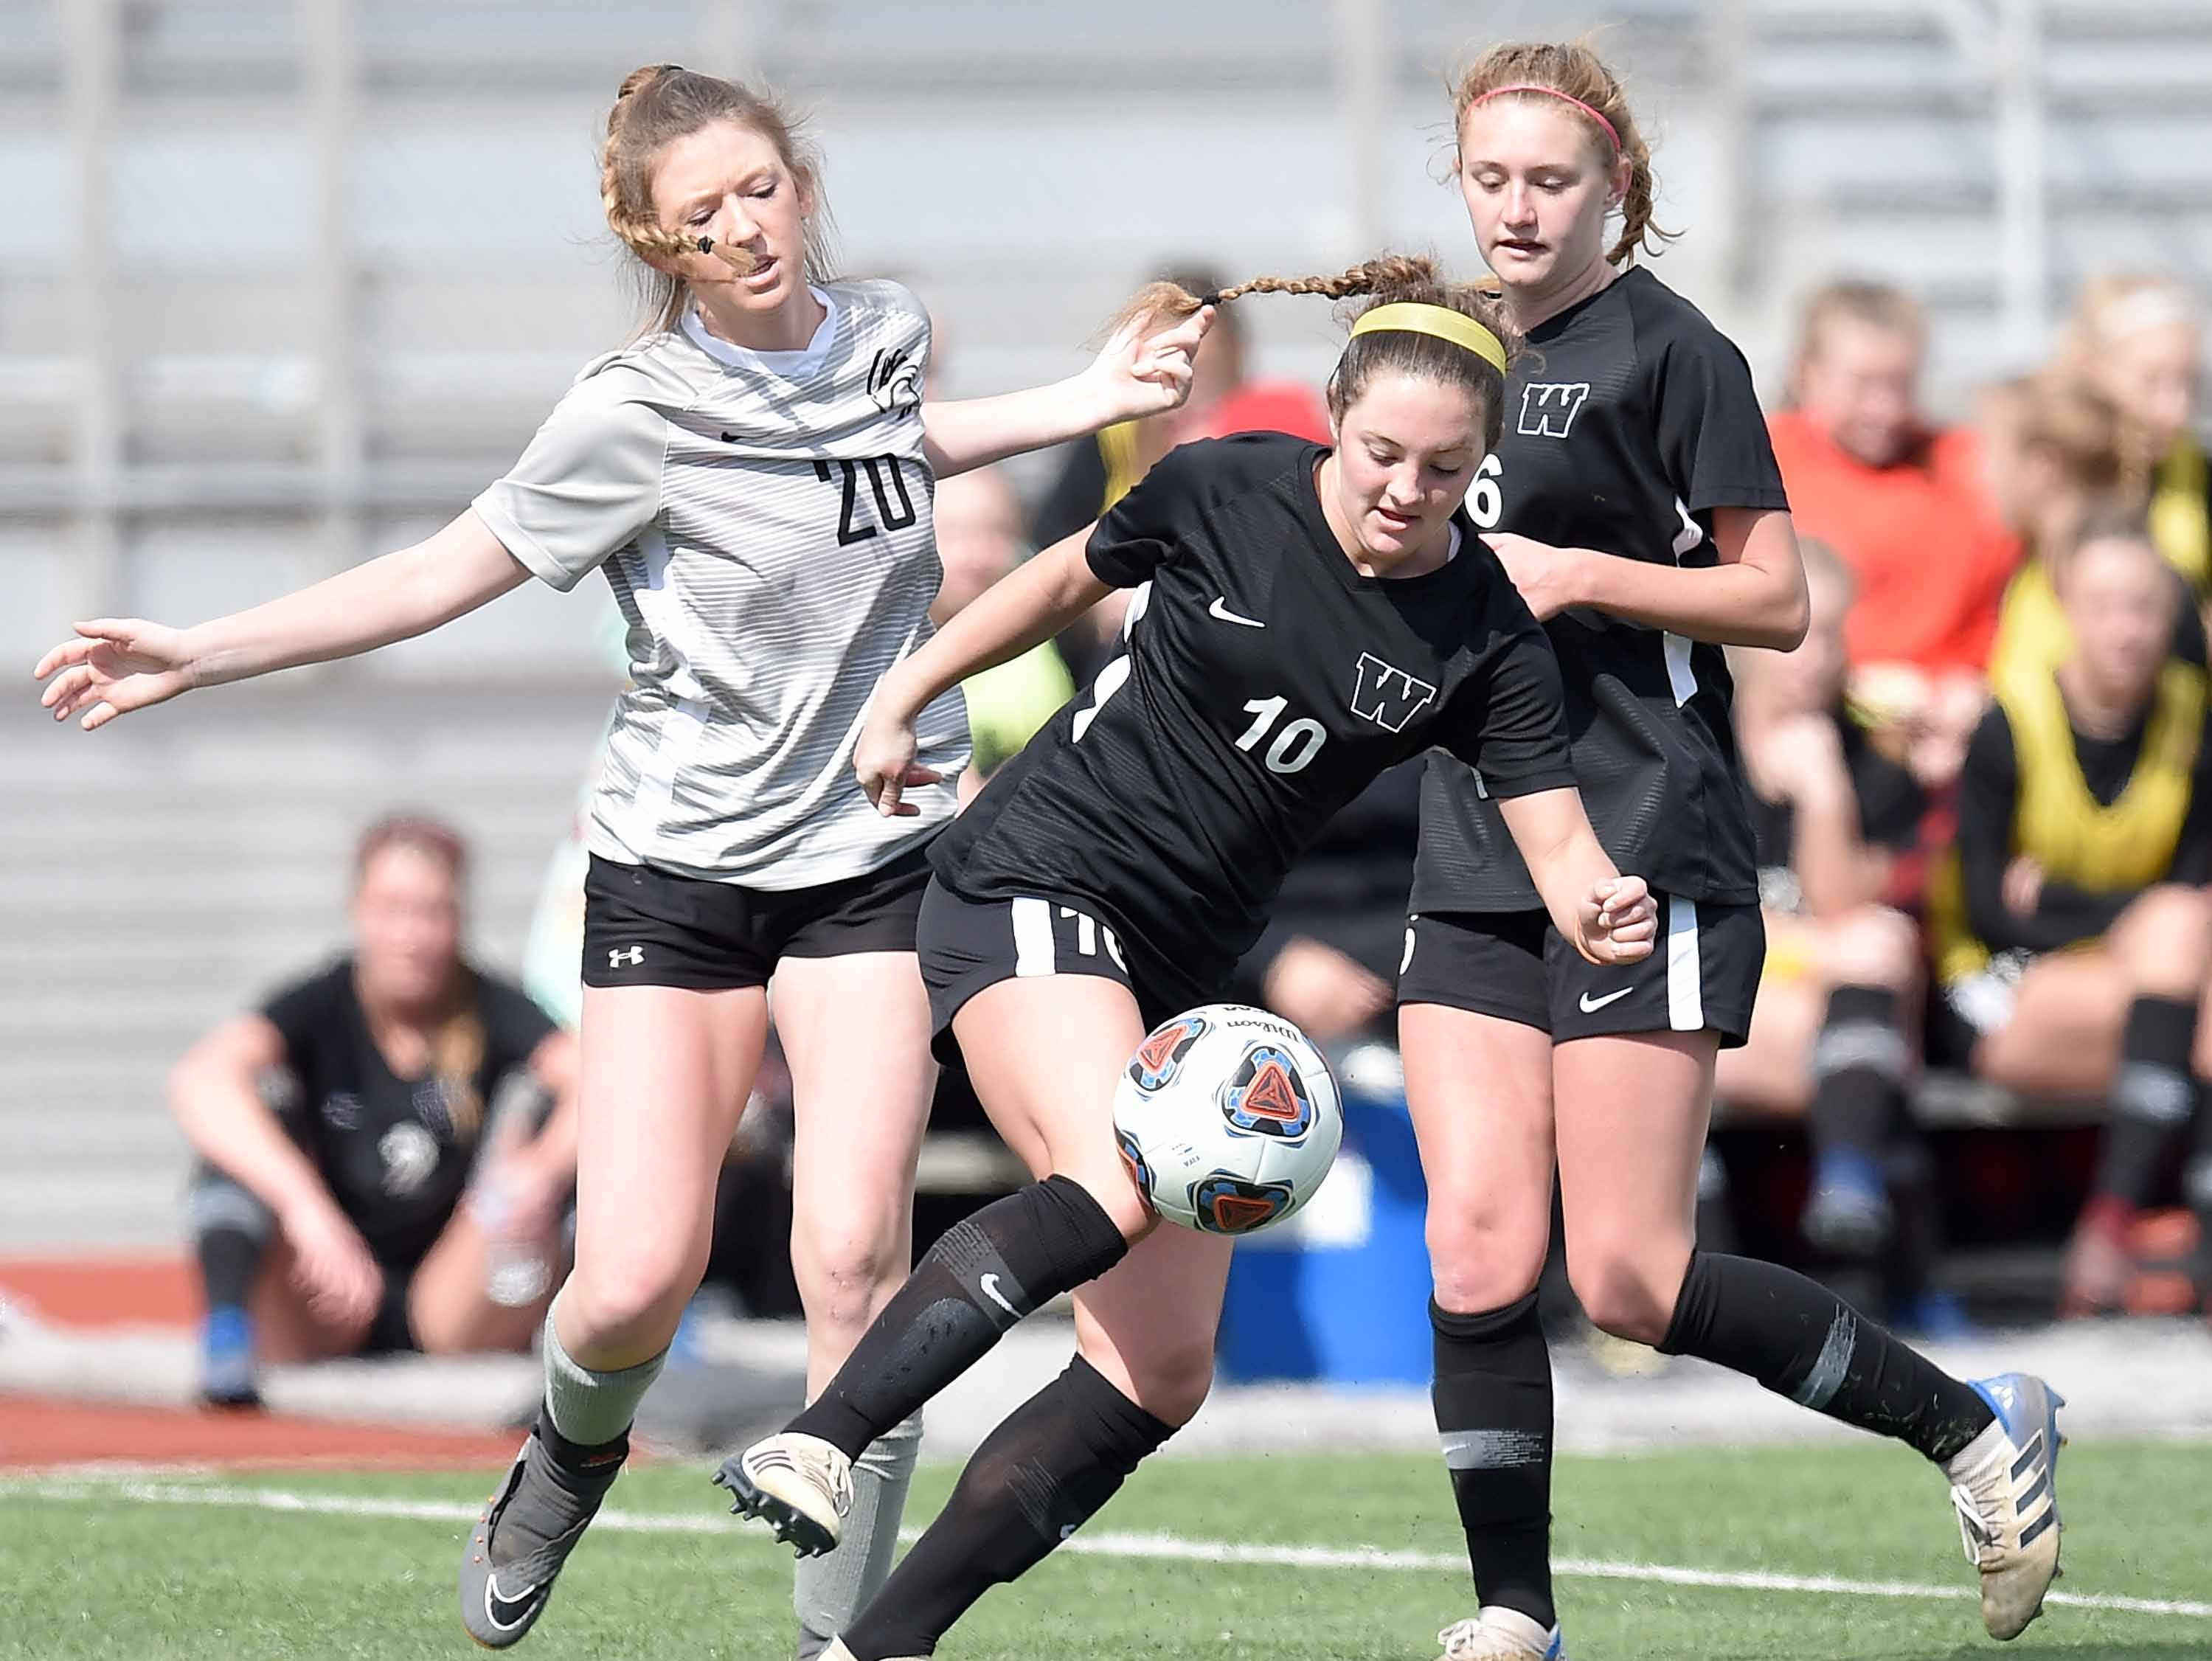 West Lauderdale's Caroline Green (10) wins a ball at midfield against Florence in the Class 4A state championship in the MHSAA BlueCross Blue Shield of Mississippi Soccer Classic on Saturday, February 9, 2019, at Ridgeland High School in Ridgeland, Miss.